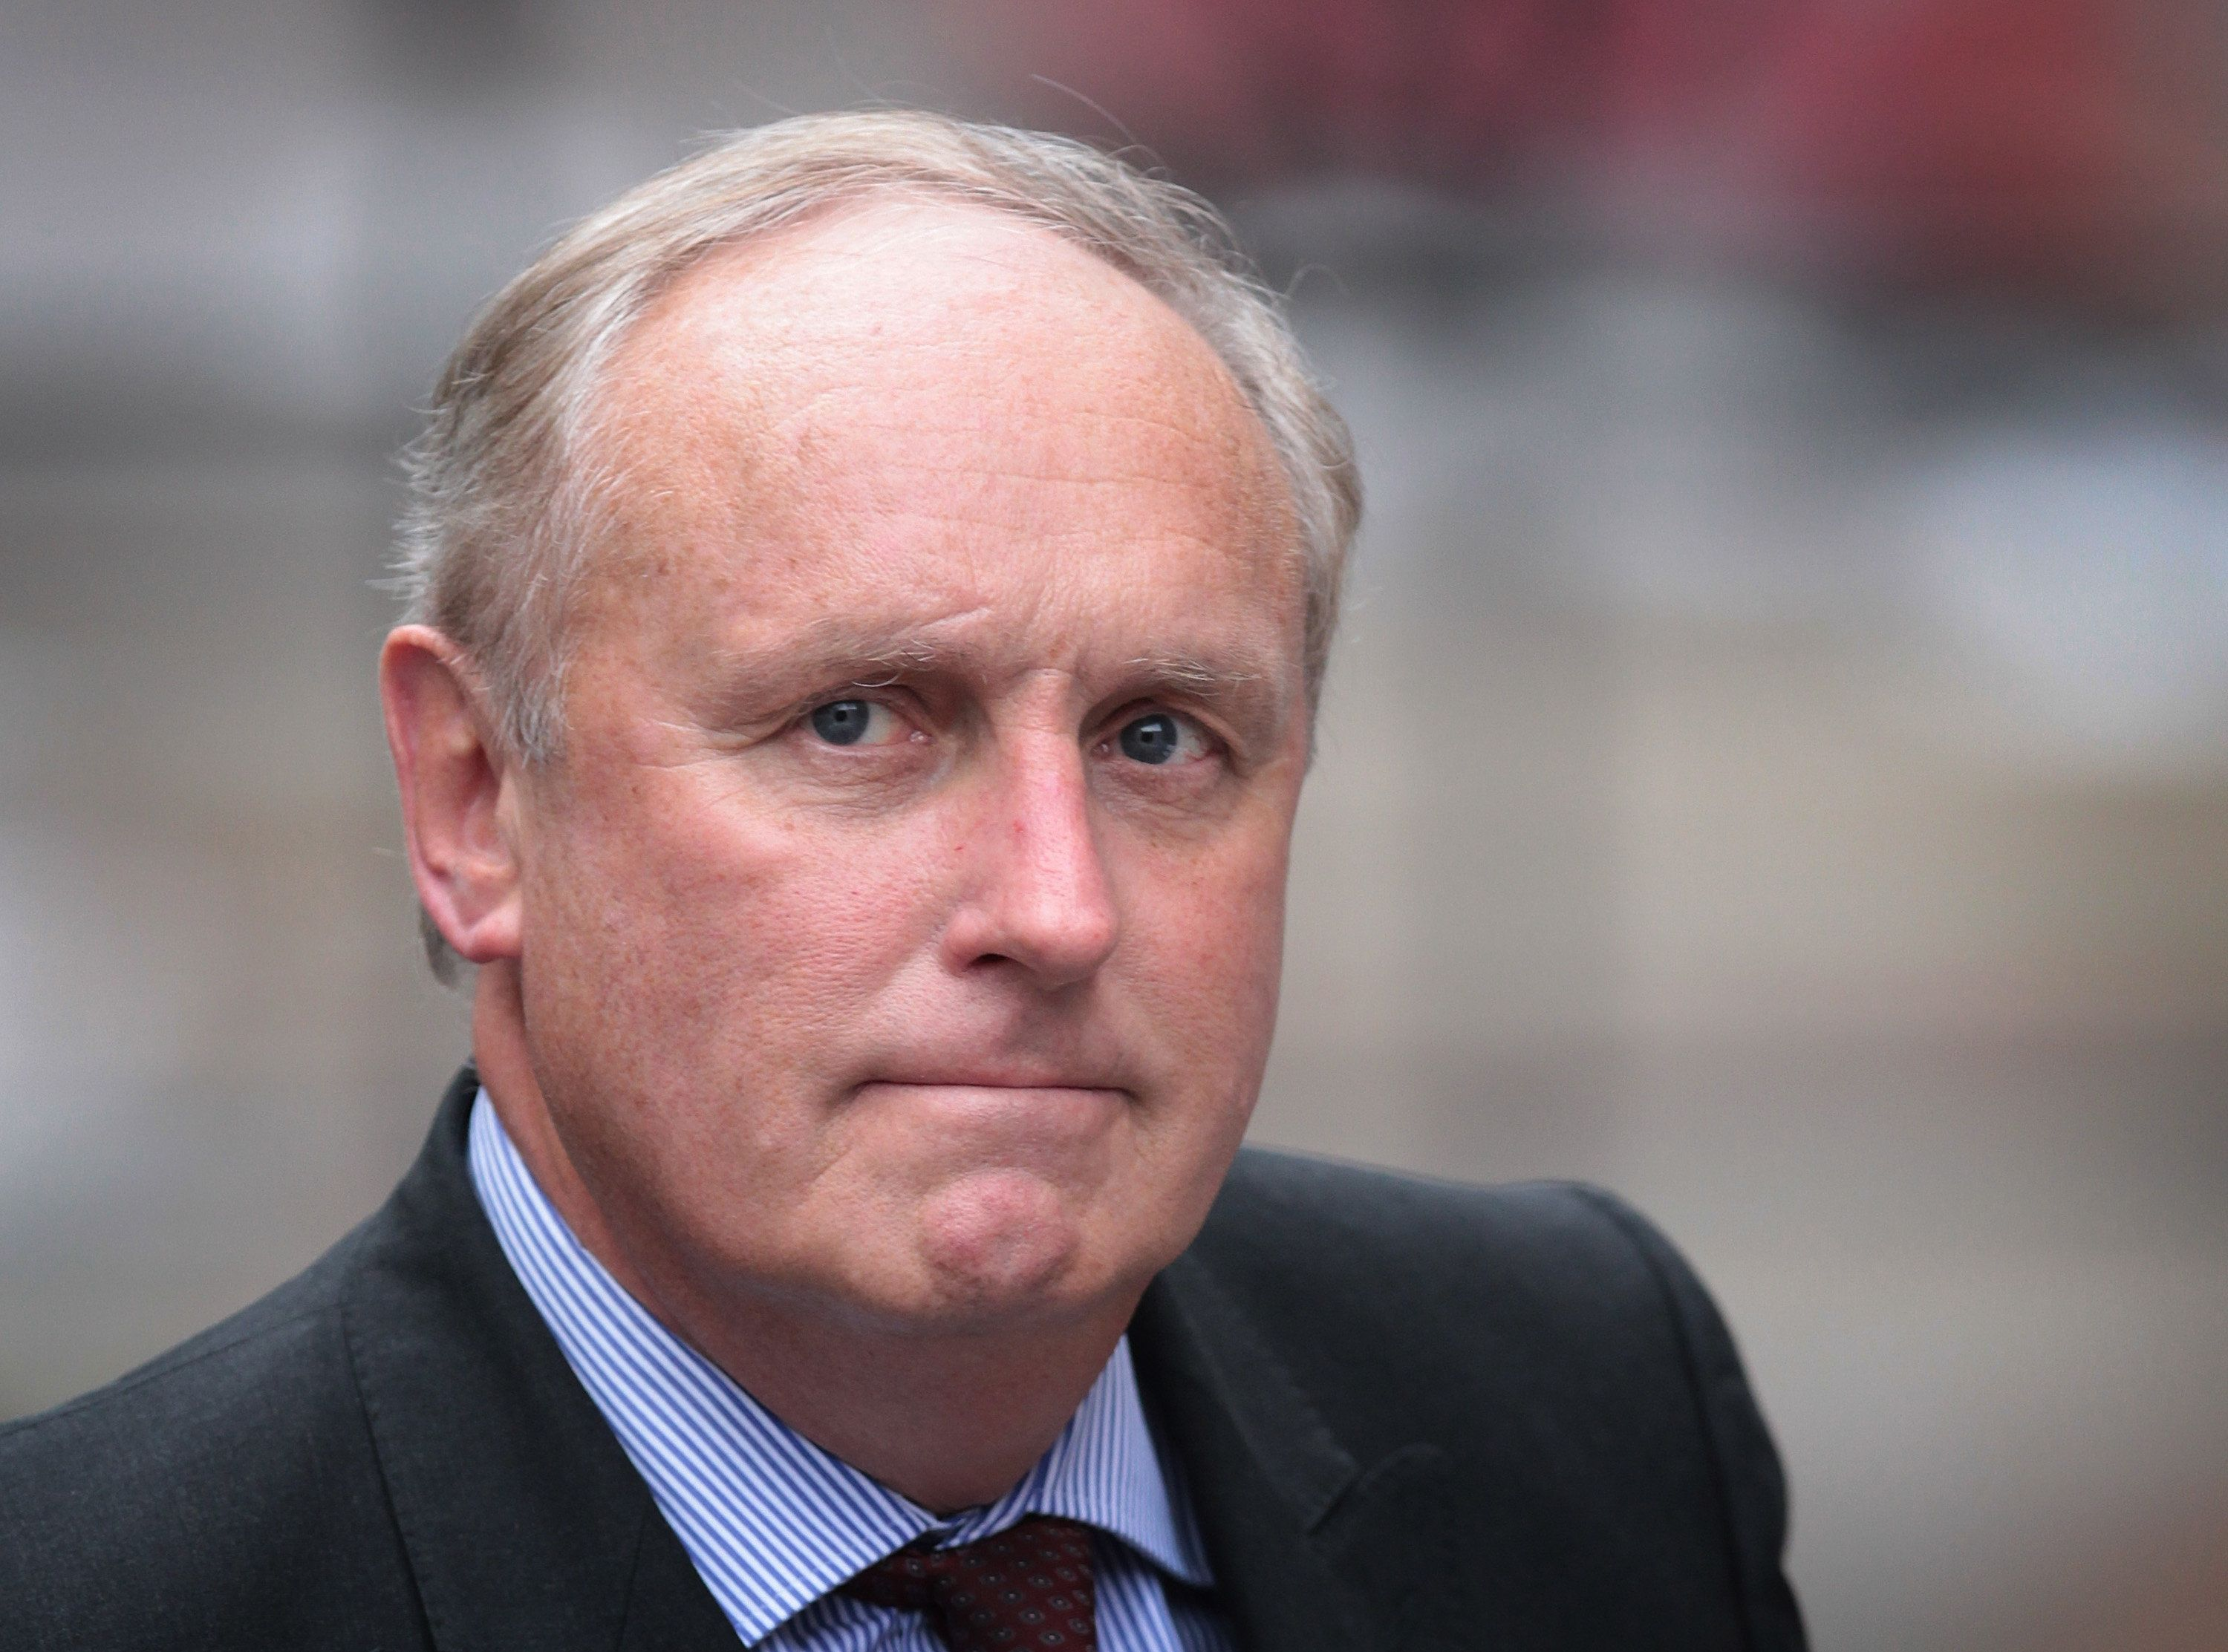 Paul Dacre arriving to give evidence at the Leveson Inquiry in